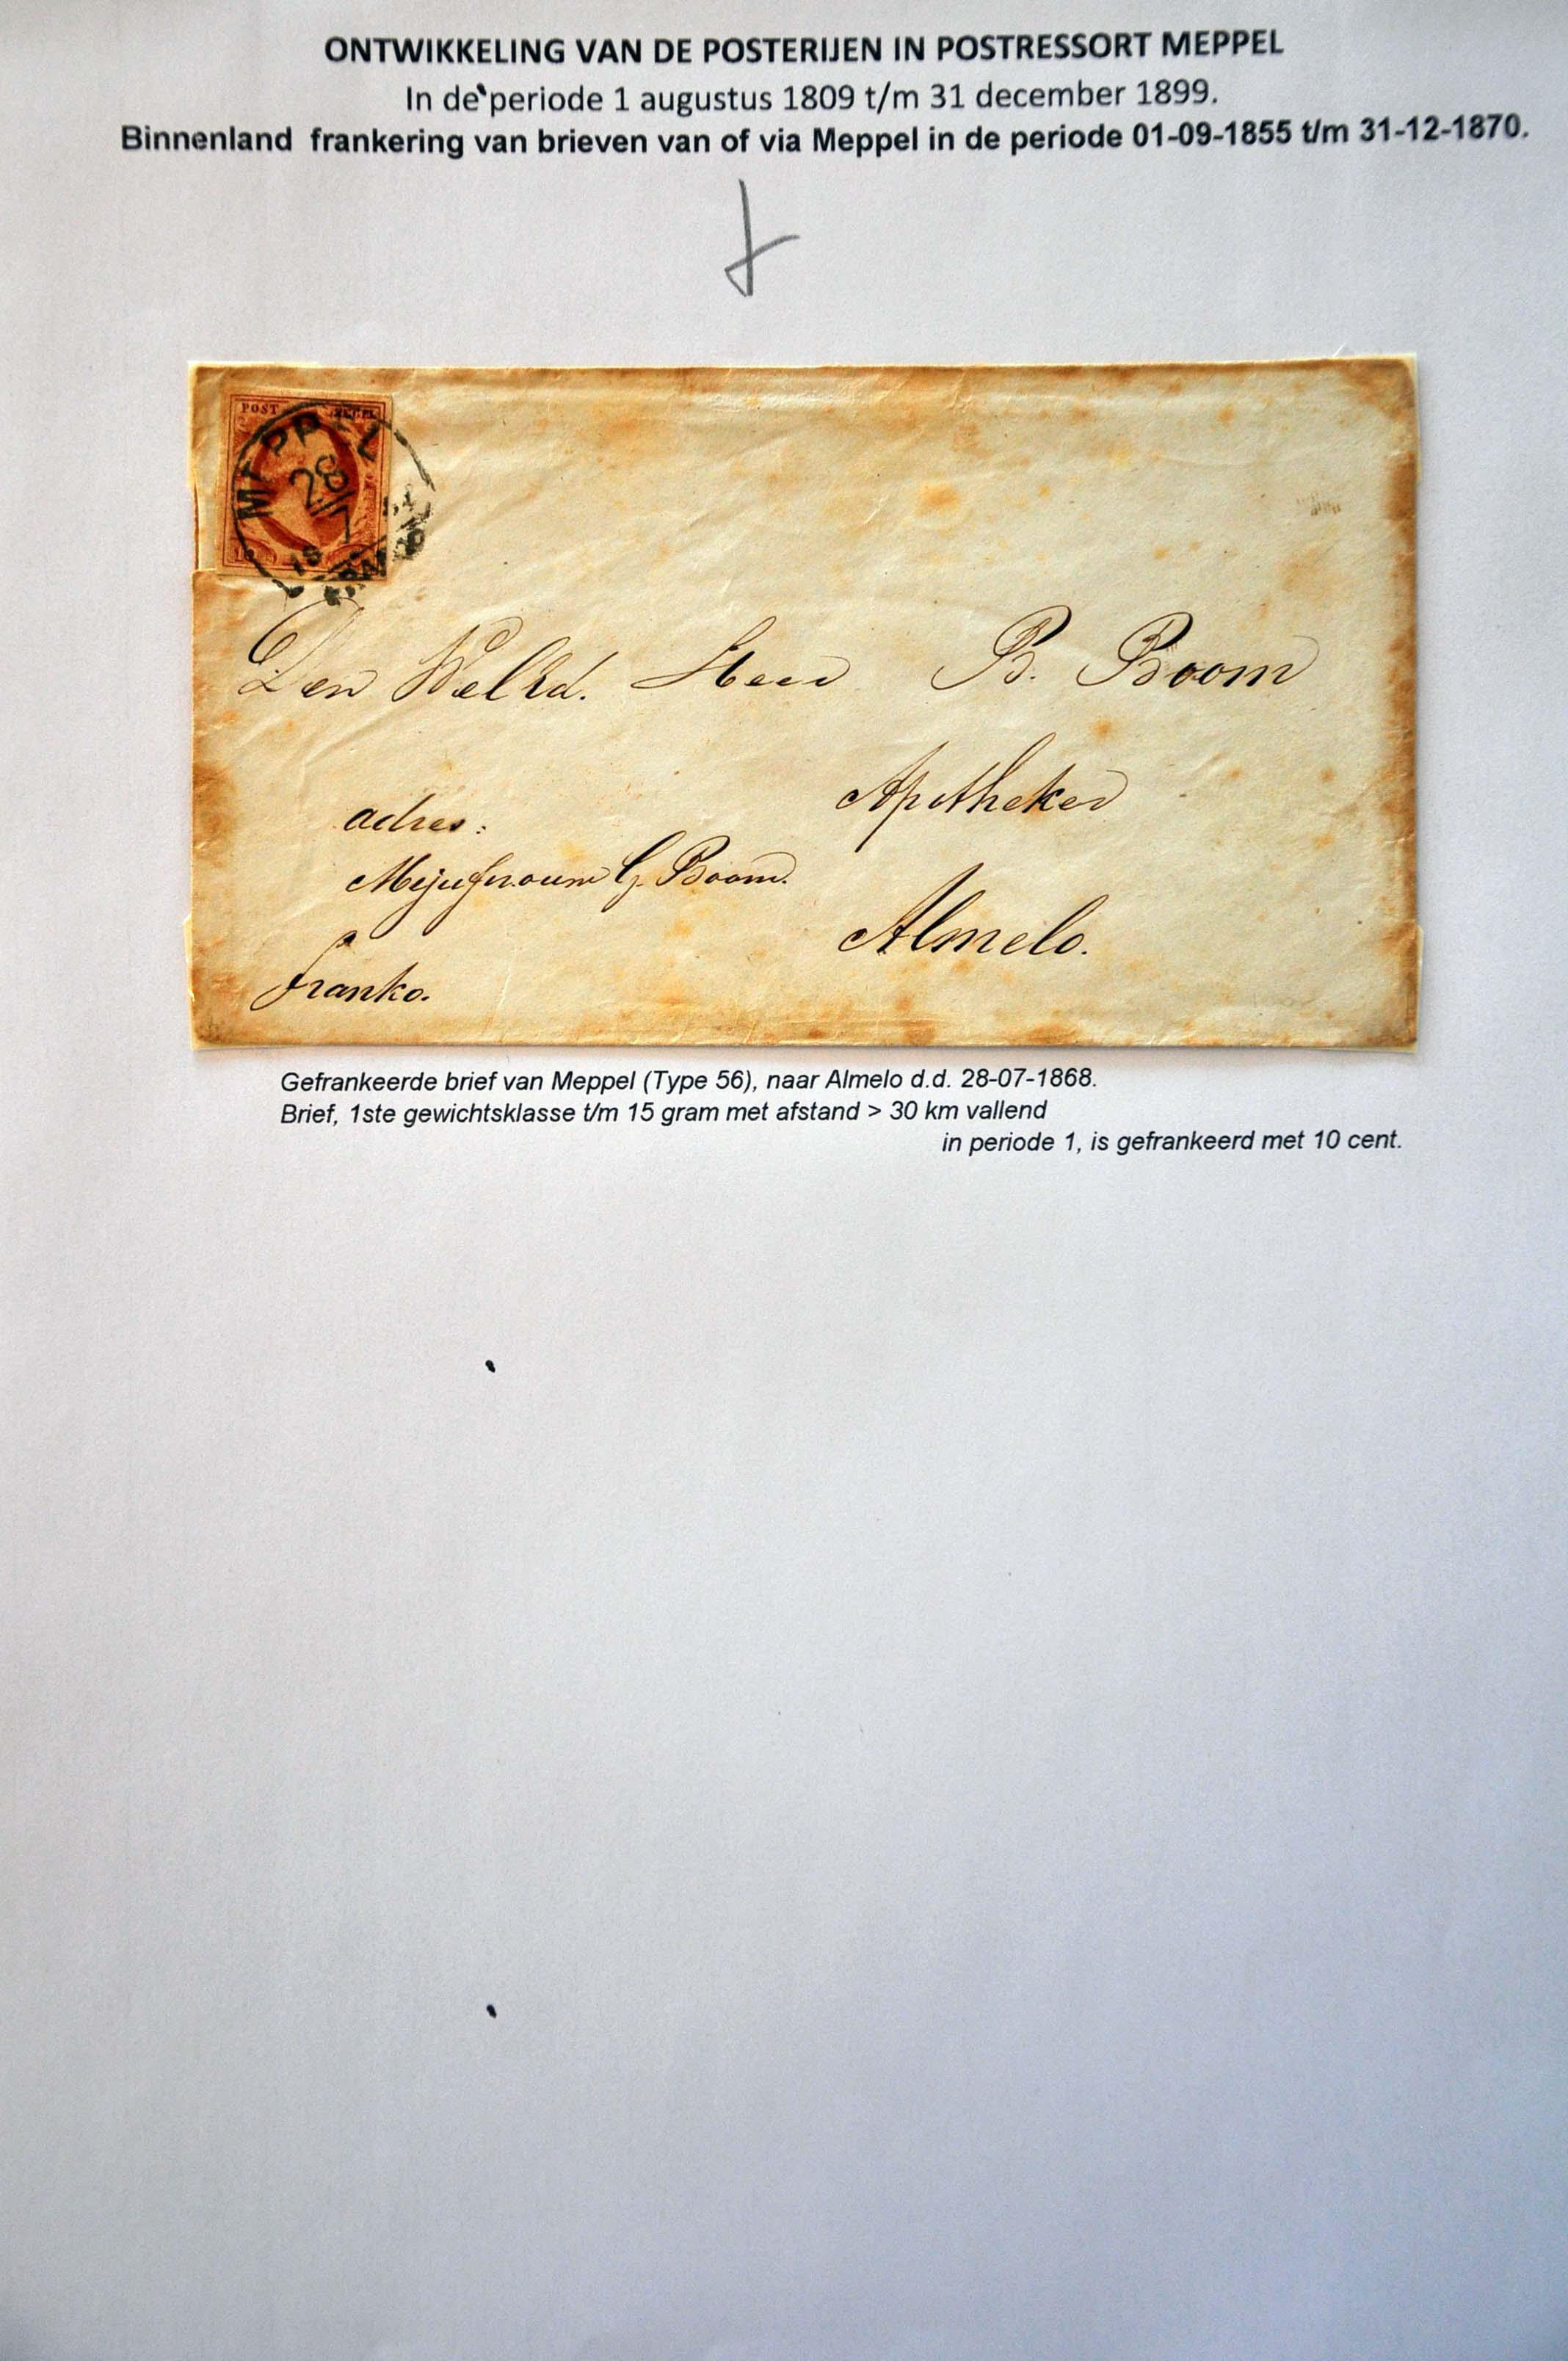 Lot 2553 - Netherlands and former colonies Netherlands -  Corinphila Veilingen Auction 245-246 Day 3 - Netherlands and former colonies - Single lots, Collections and lots, Boxes and literature